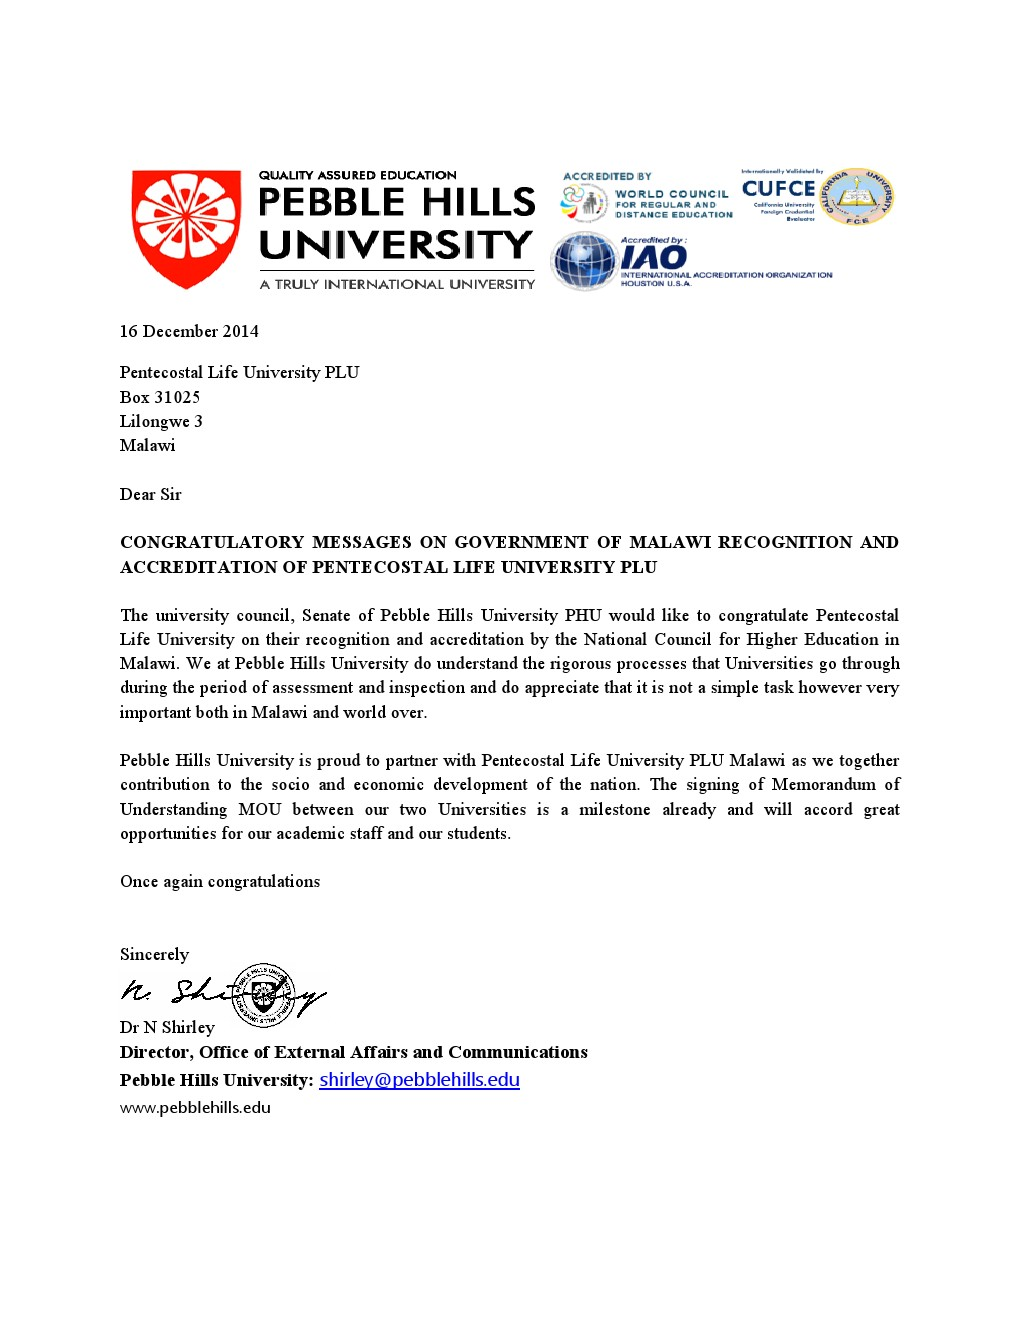 Pebble hills university congratulation letter